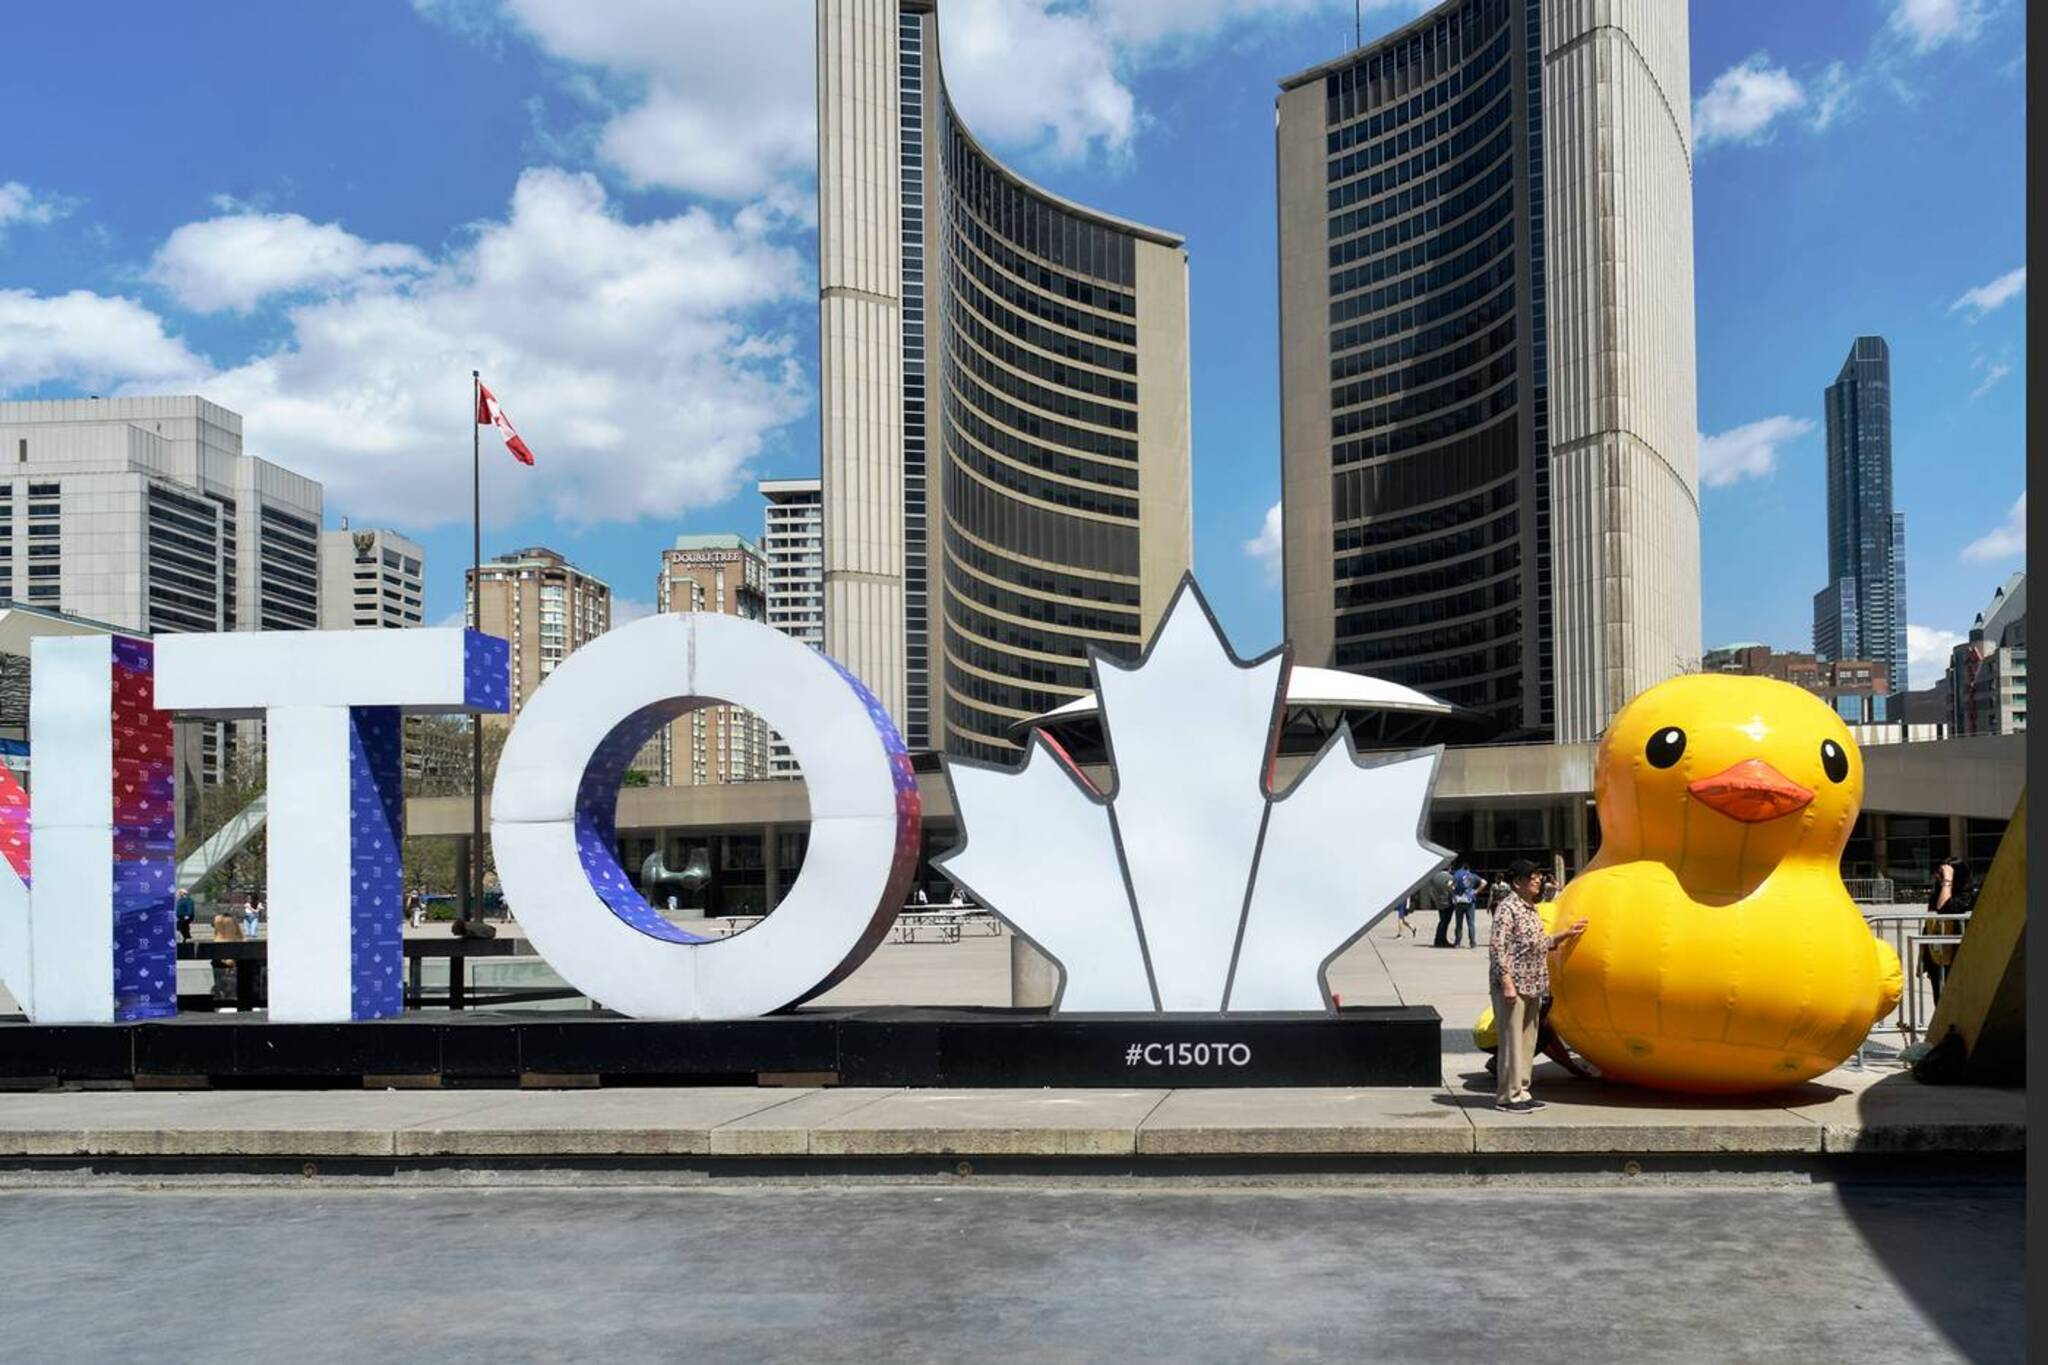 People Are Upset About 200k Cost Of Giant Rubber Duck